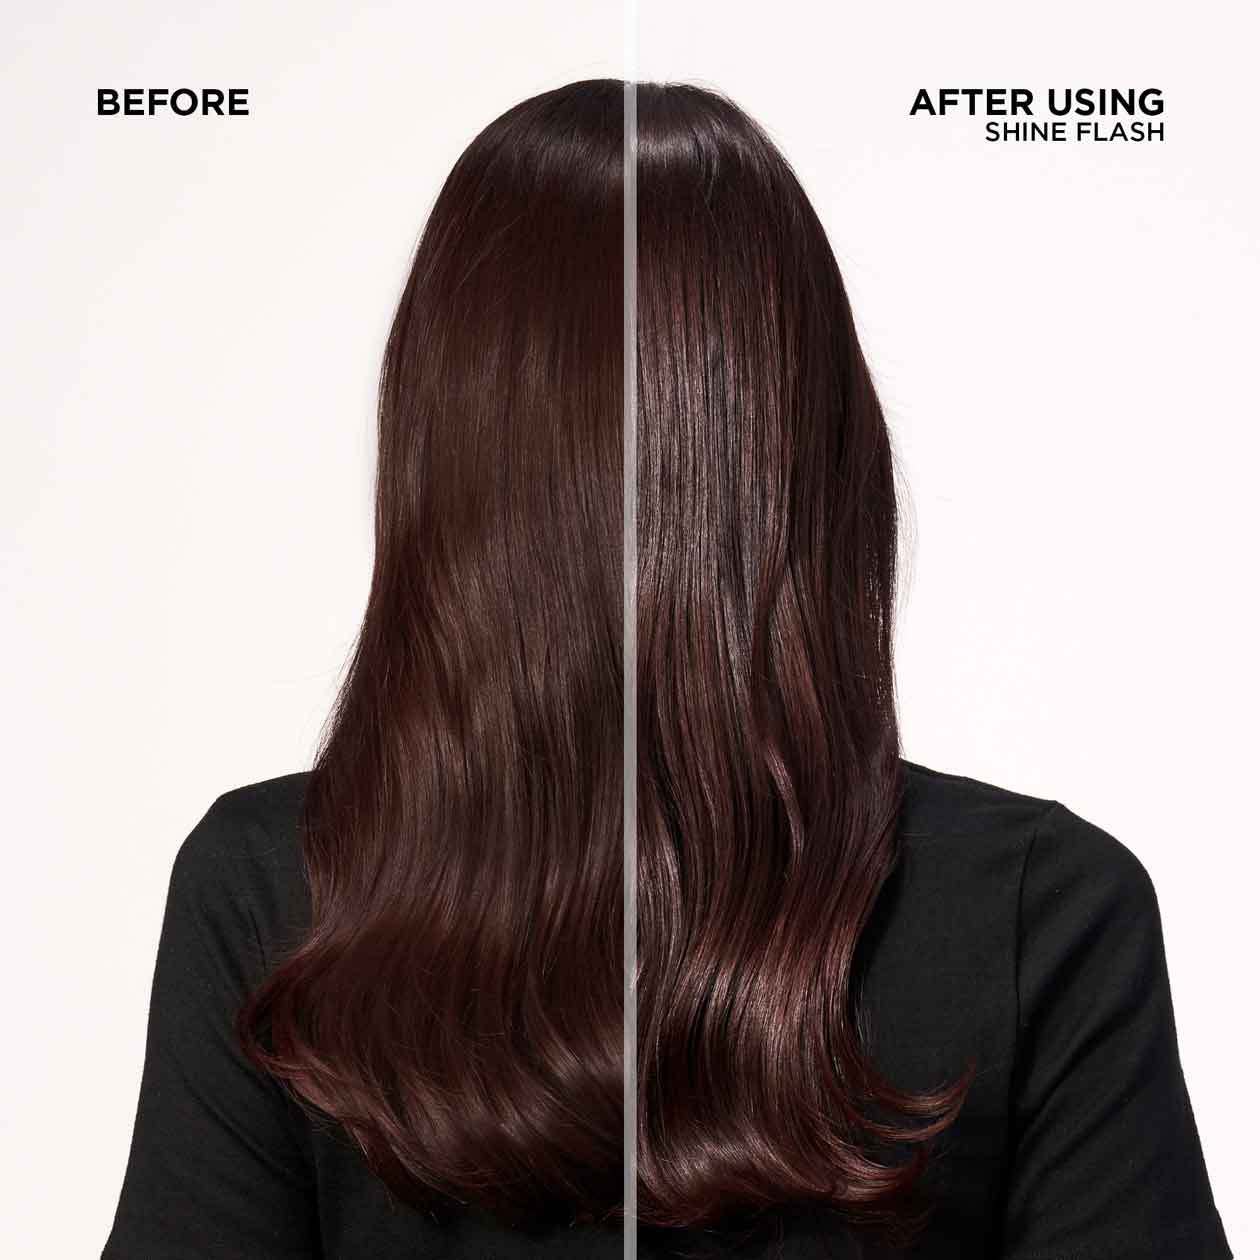 Redken-2020-EComm-Shine-Flash-Before-After-Opt2-2000x2000